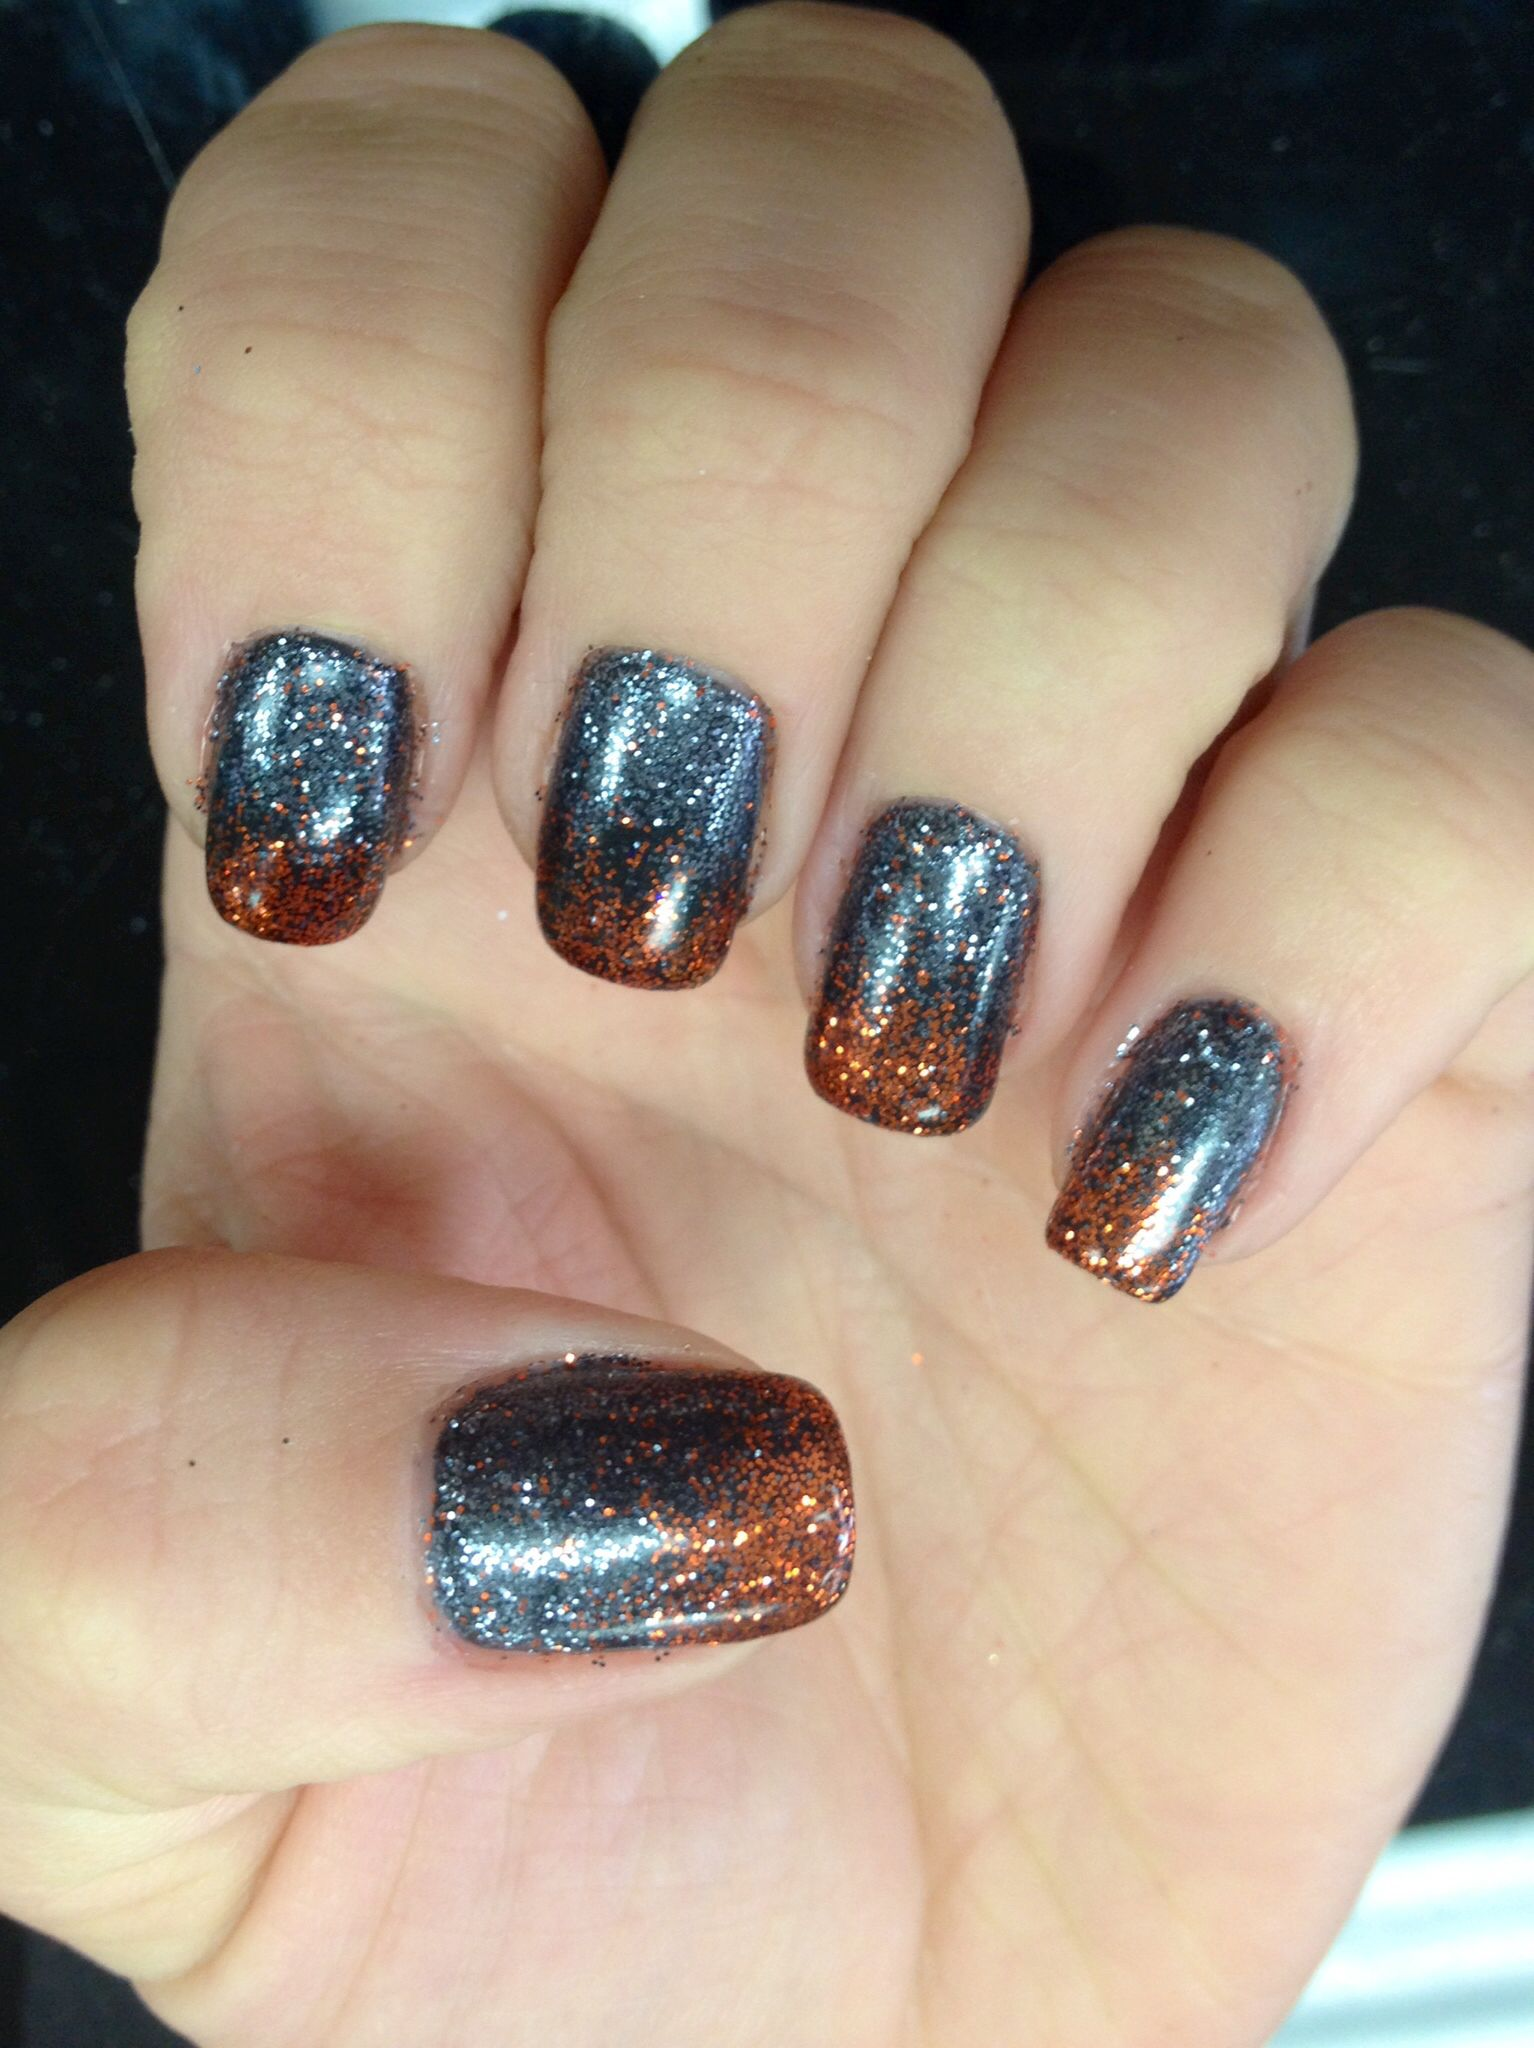 Halloween waterfall shellac gel nails | Nails, Gel nails ...